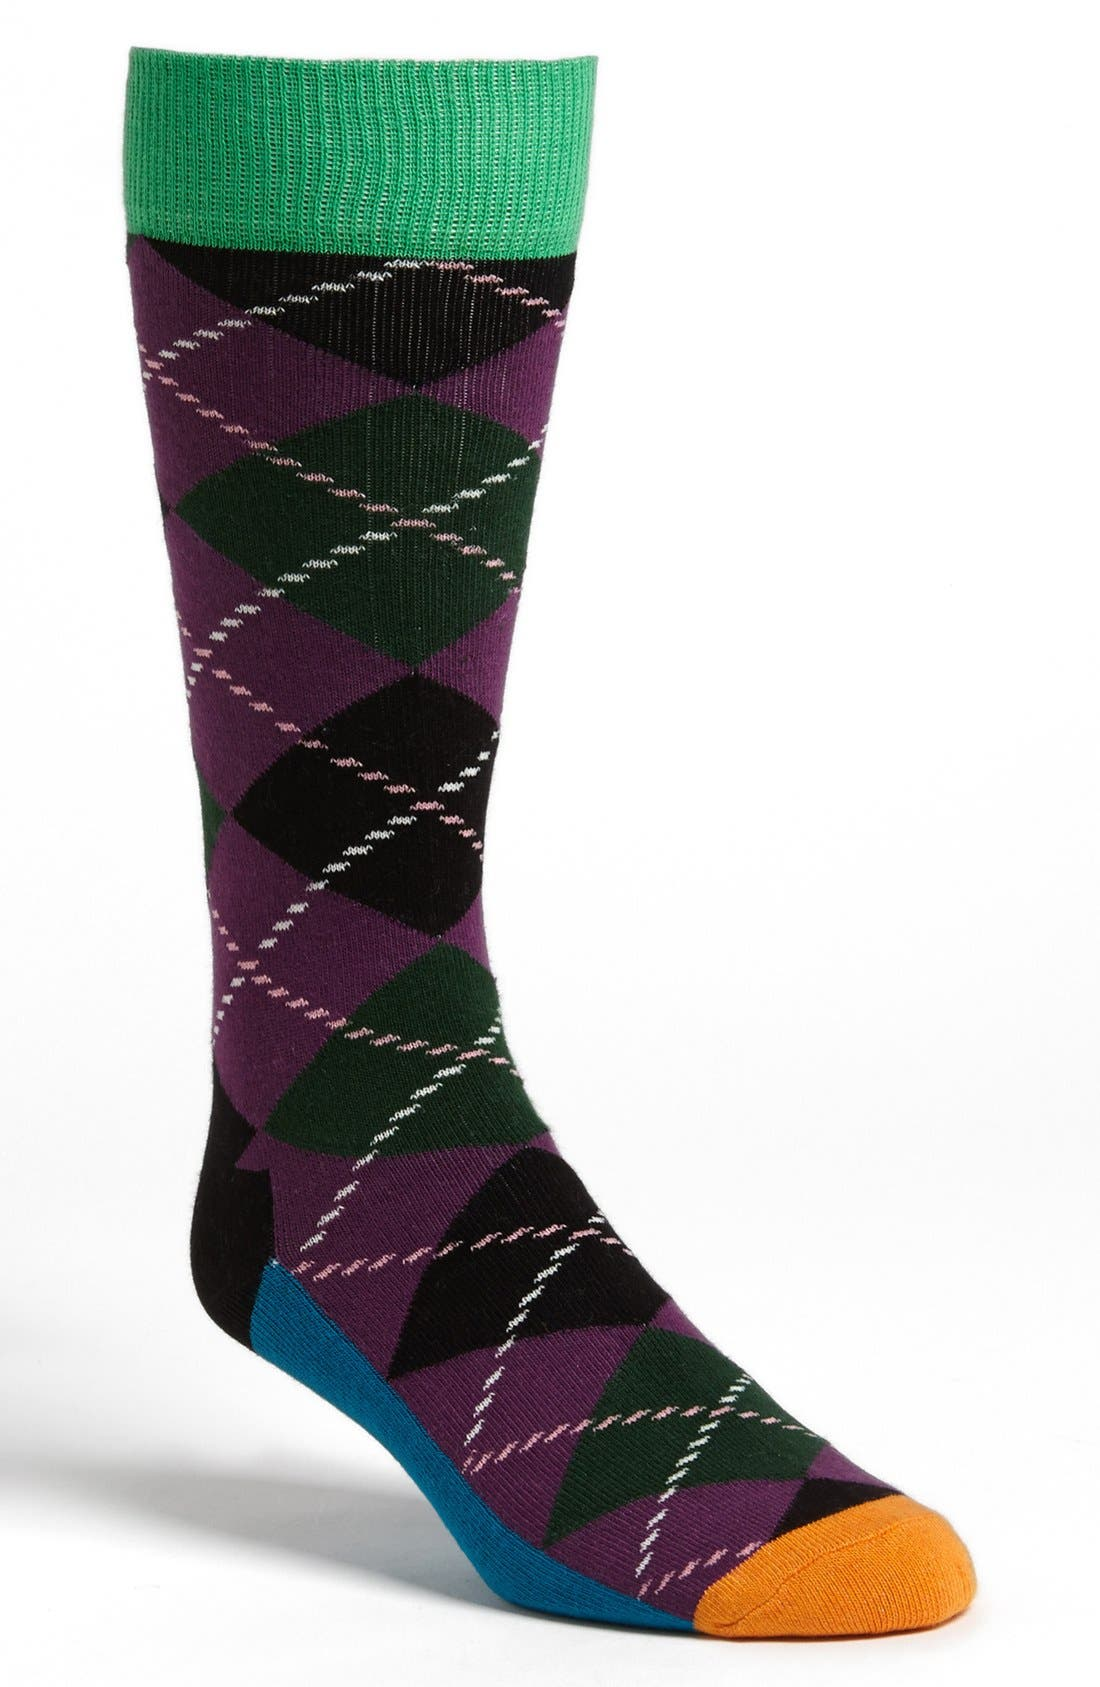 Main Image - Happy Socks Argyle Patterned Combed Cotton Blend Socks